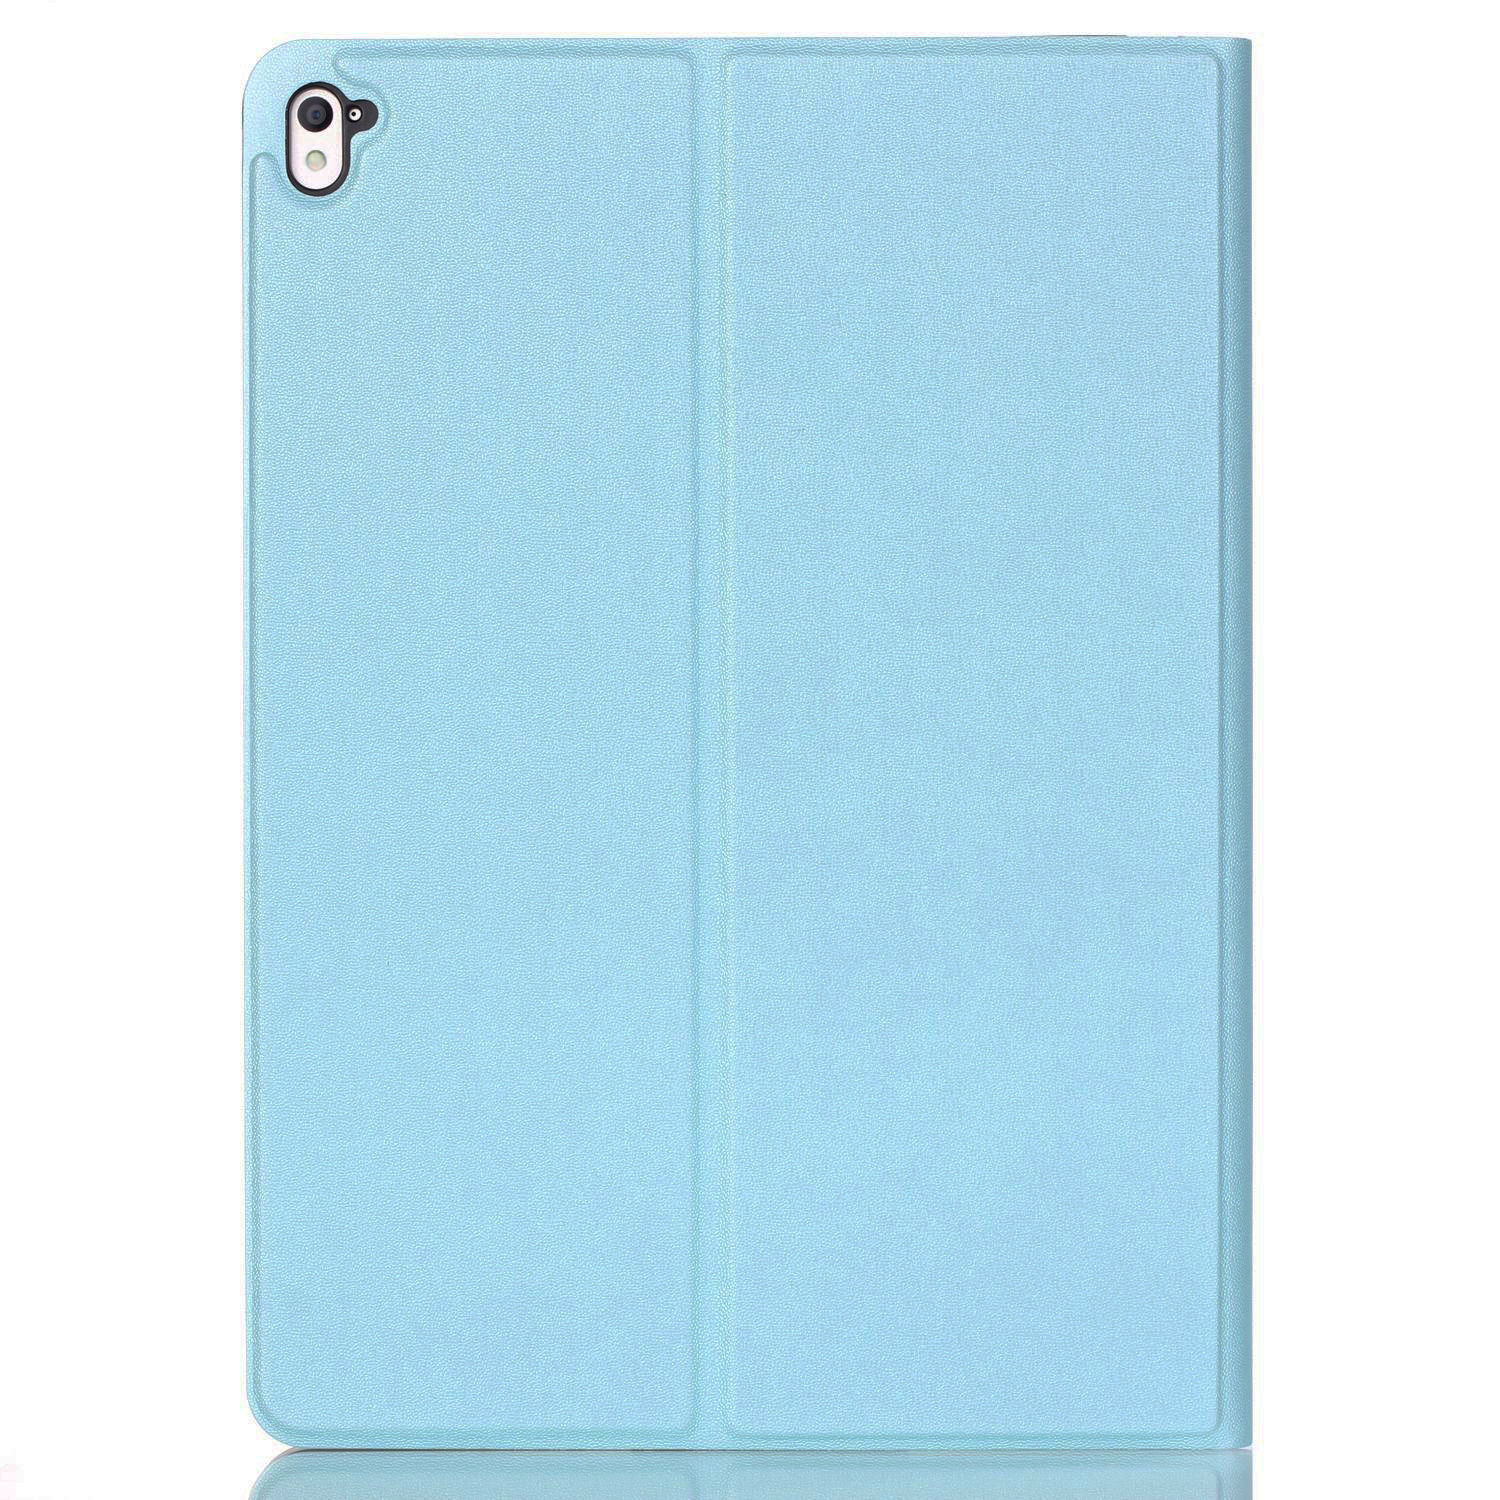 Custodia-Per-Apple-IPAD-Pro-IN-9-7-Pollici-Case-Cover-Protettiva-Skin-Shell miniatura 28